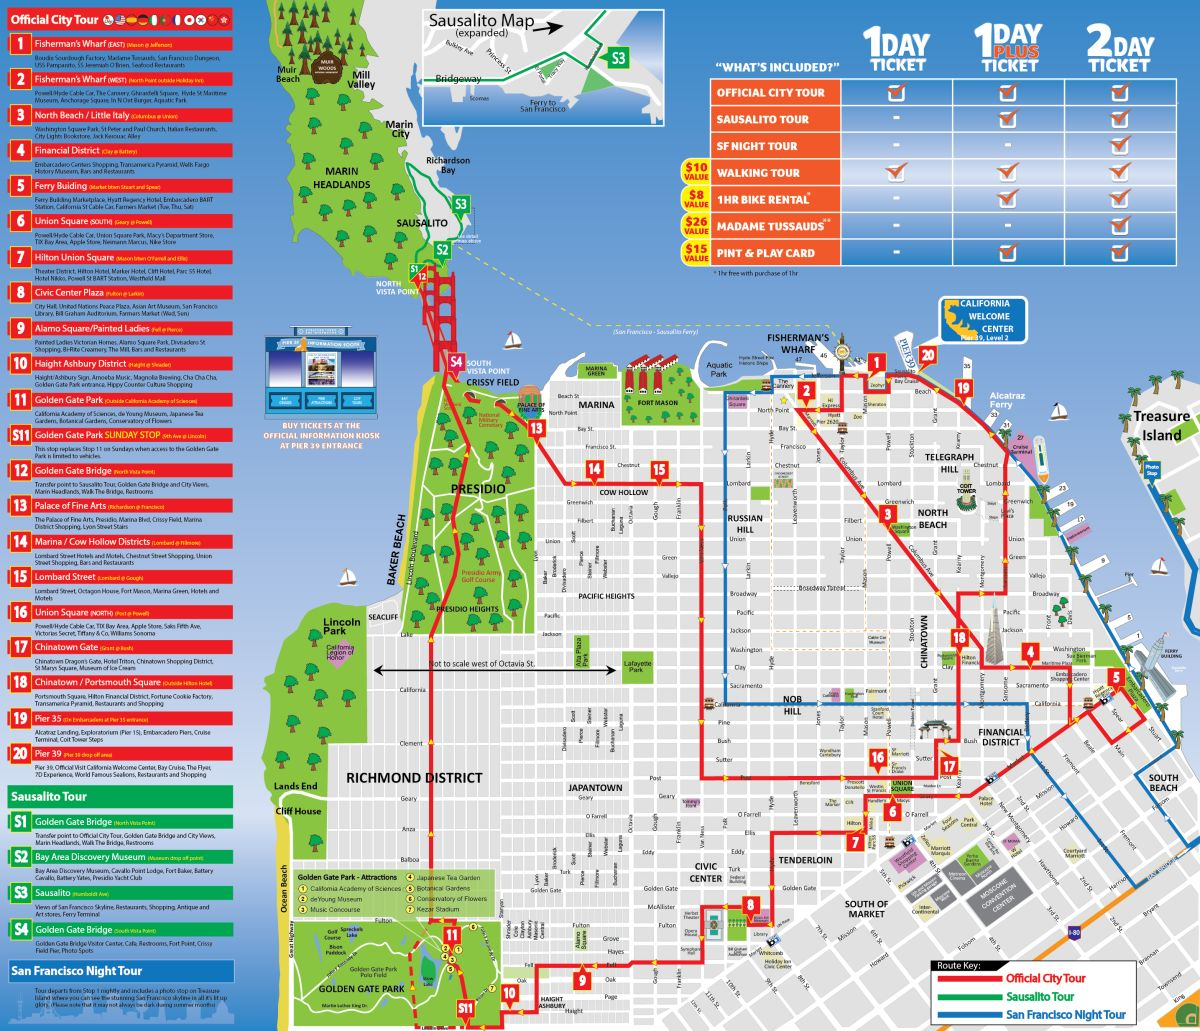 San Francisco Tour Map on northern ca map, california map, las vegas map, tokyo map, san diego, sausalito map, new orleans map, boston map, los angeles map, golden gate park map, united states map, london map, berkeley map, usa map, bay area map, chicago map, omaha map, detroit map, sydney australia map, dallas map, new york map, salt lake city map, kansas city map,